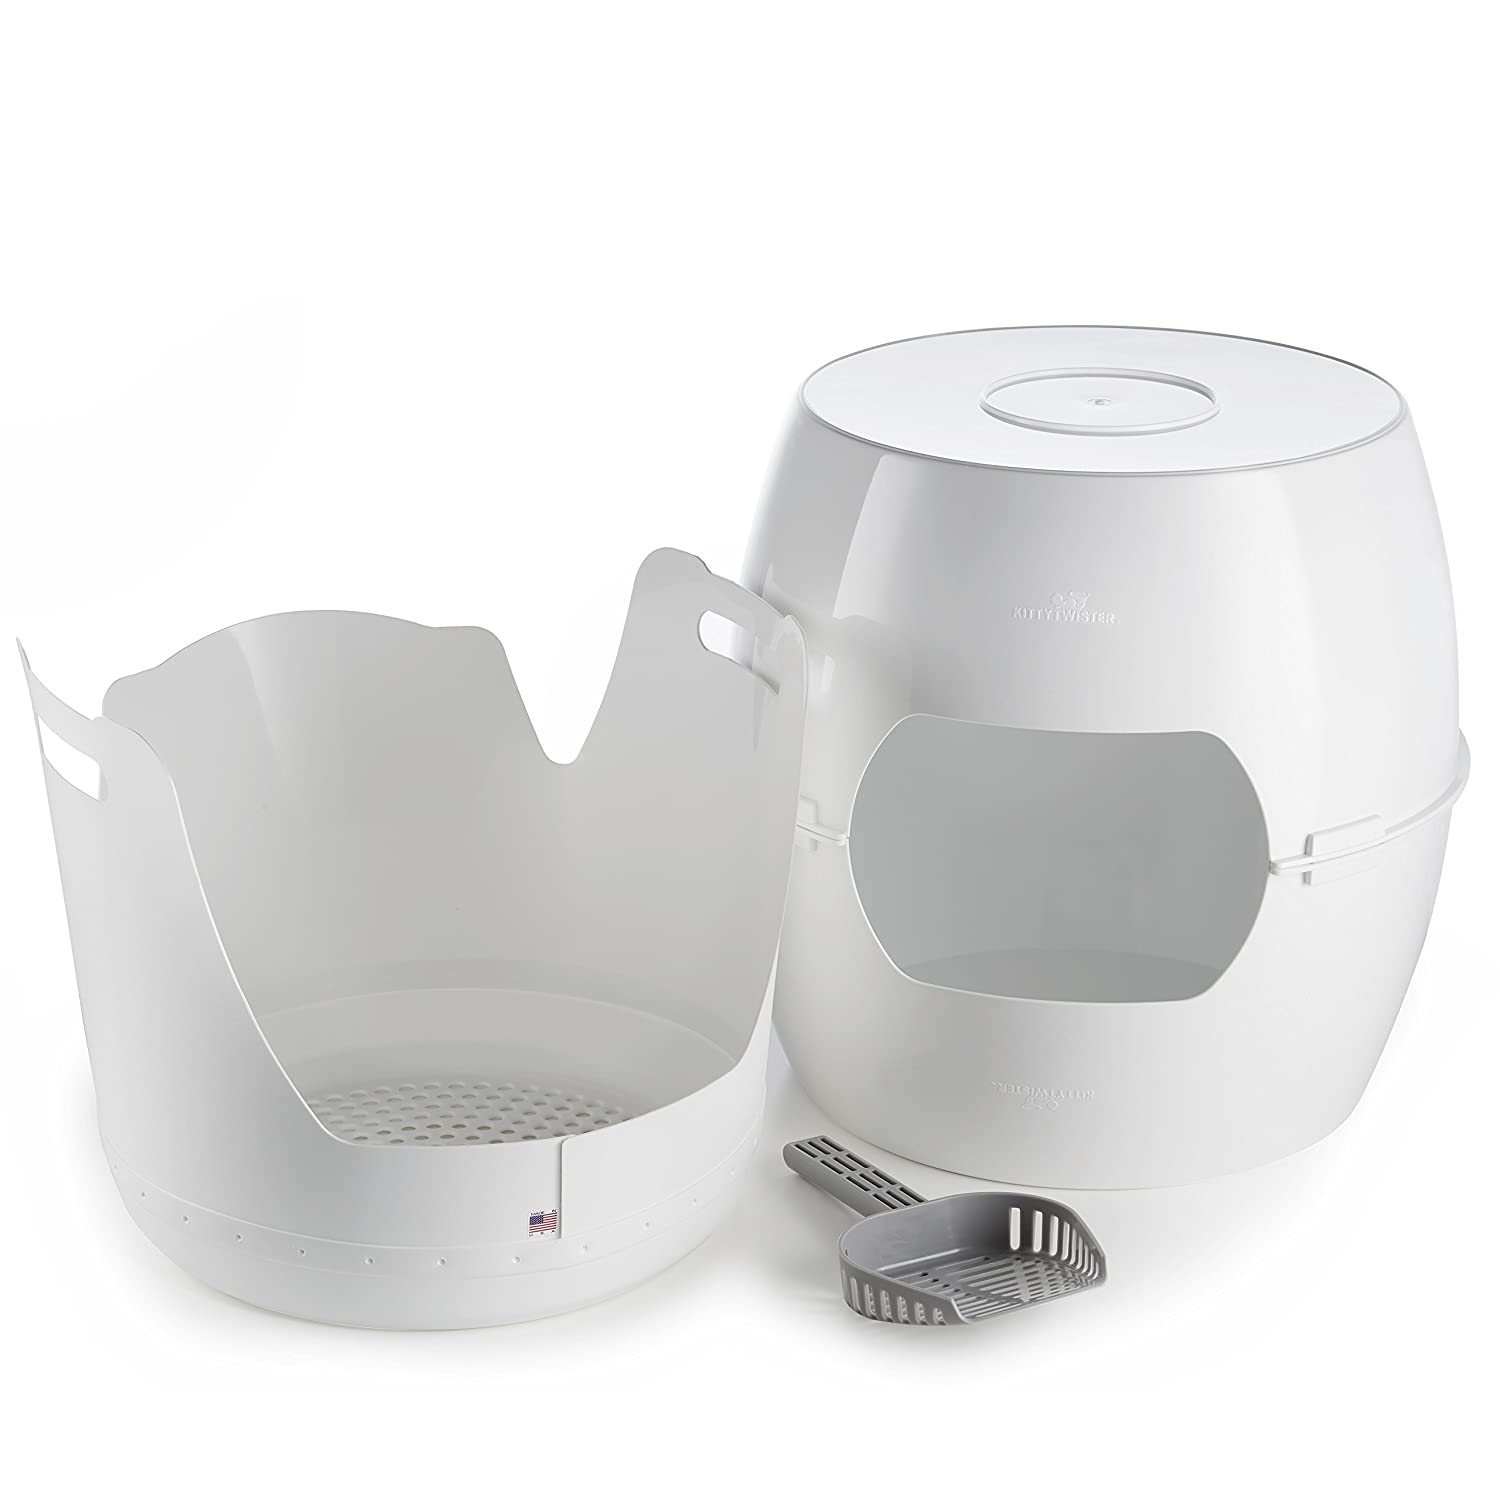 KittyTwister TRIO Large Sifting Litter Box Includes Lift n' Twist Sifting Tray and Scoop Ease Scoop Premium Quality and Stylish Appearance.